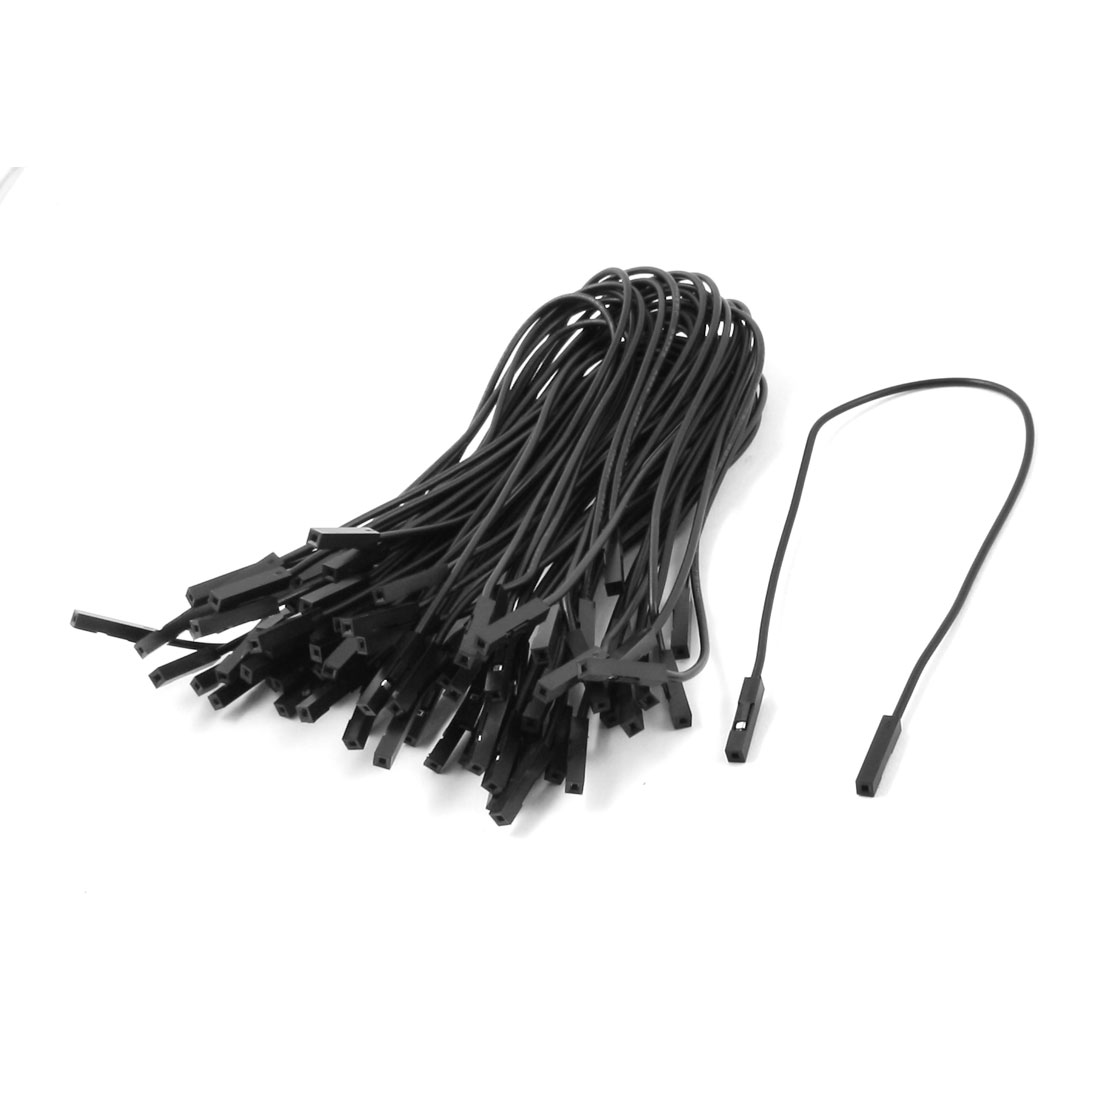 40pcs Female to Female Solderless Breadboard Jumper Wire Black